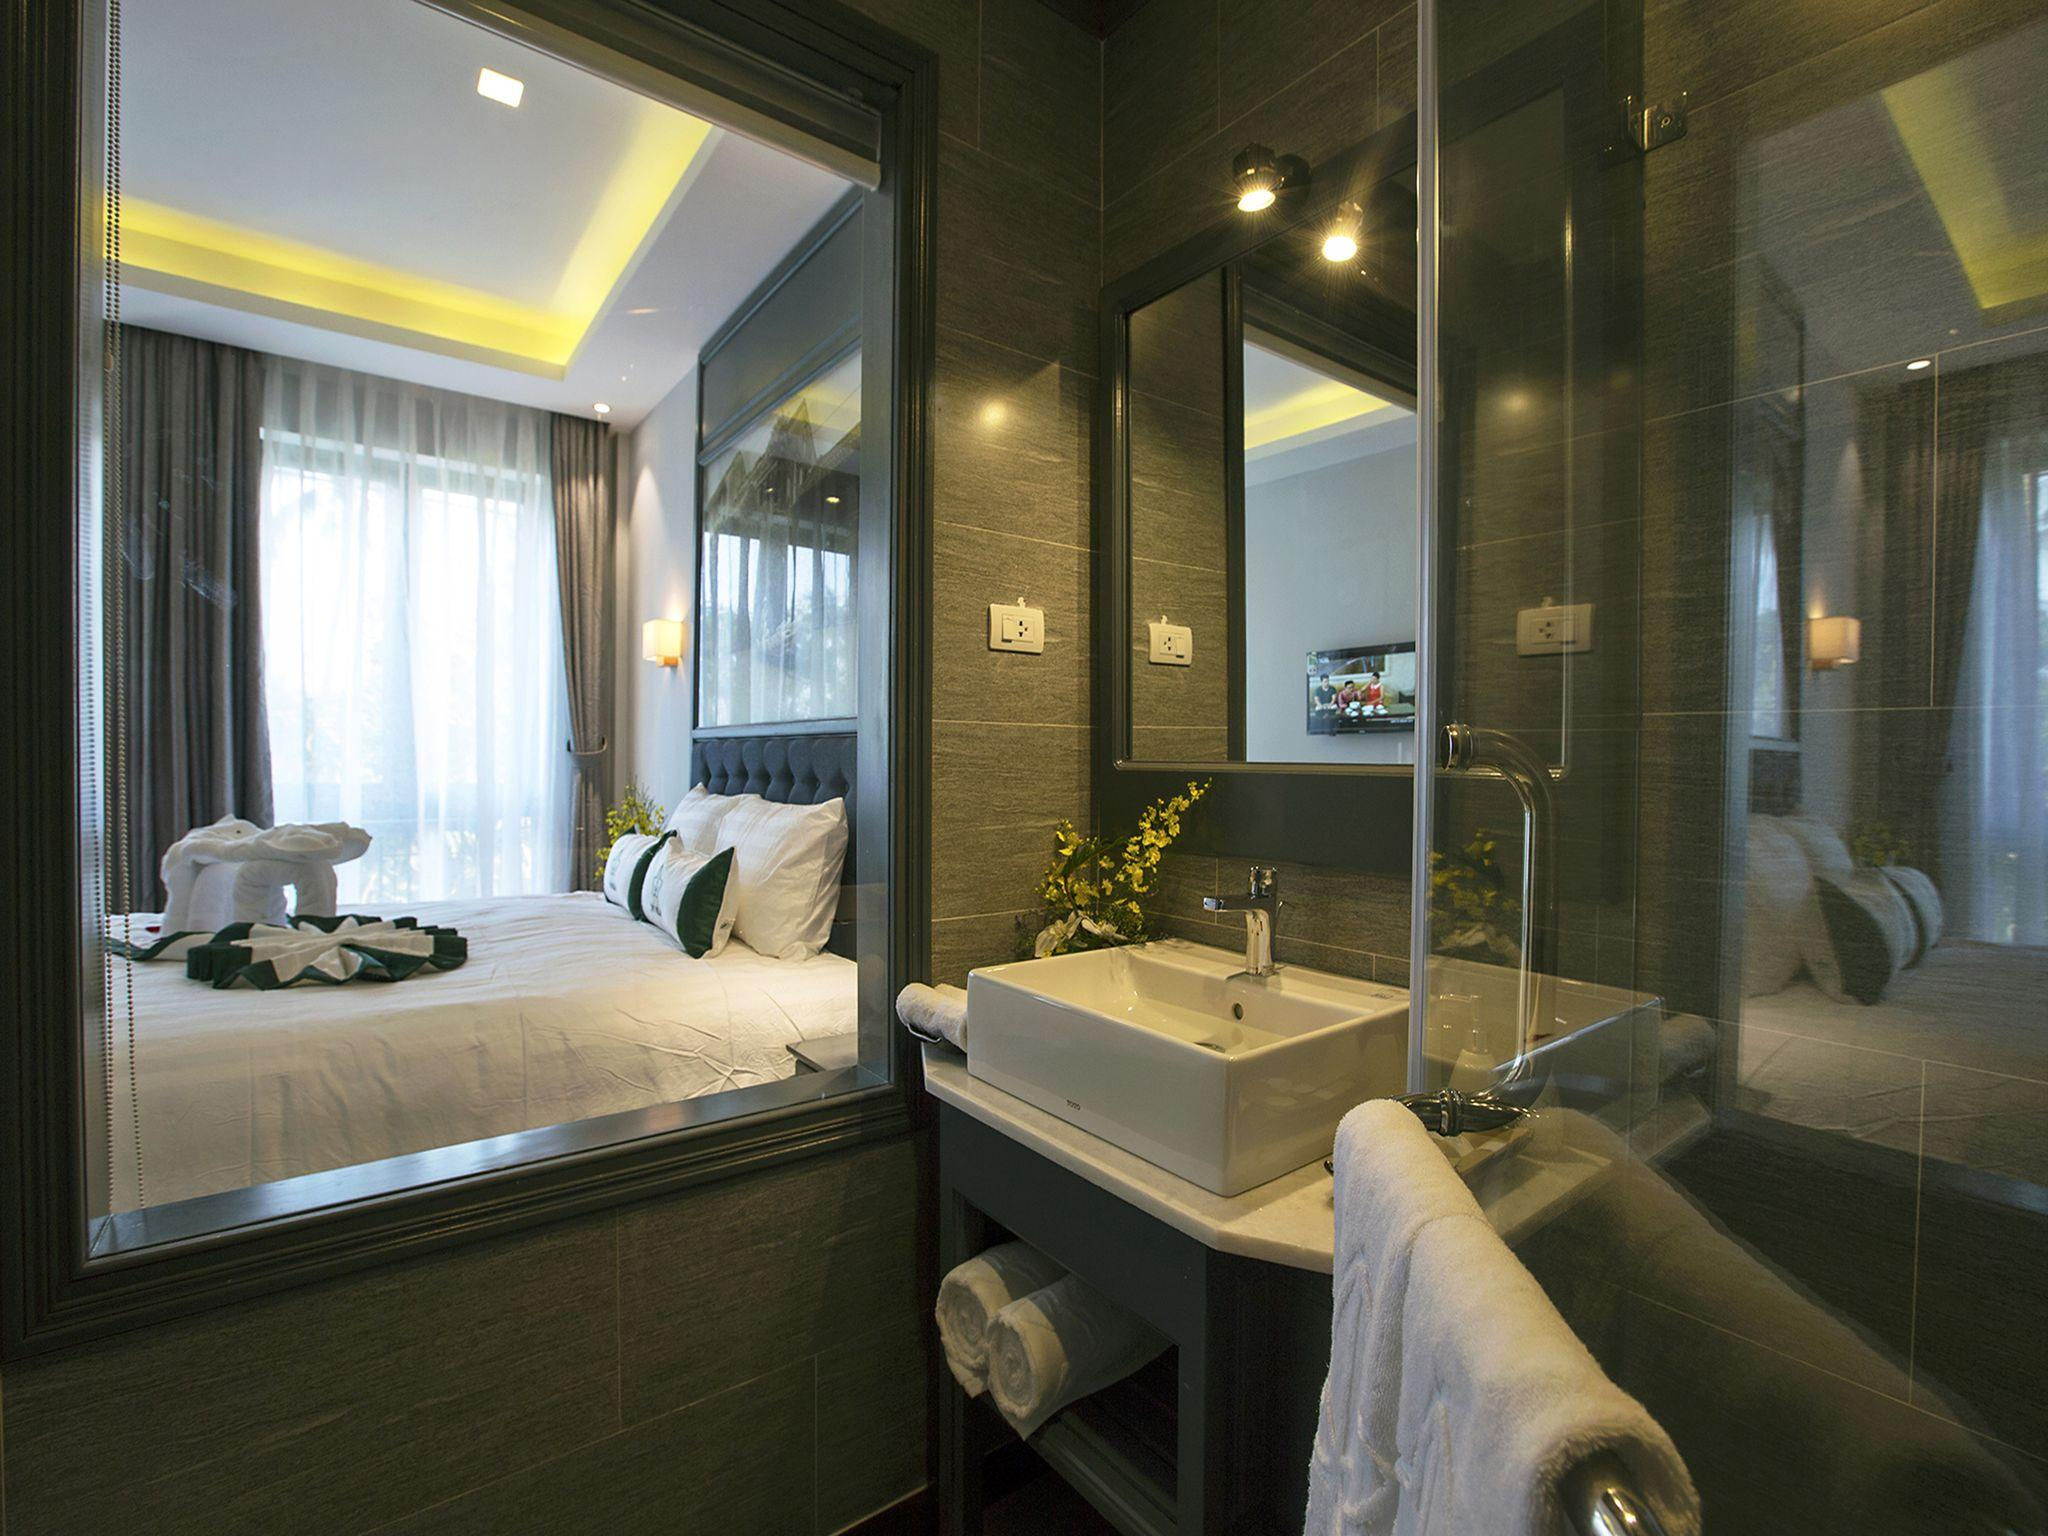 Ivy Villa One Deluxe Room With Double Bed 02